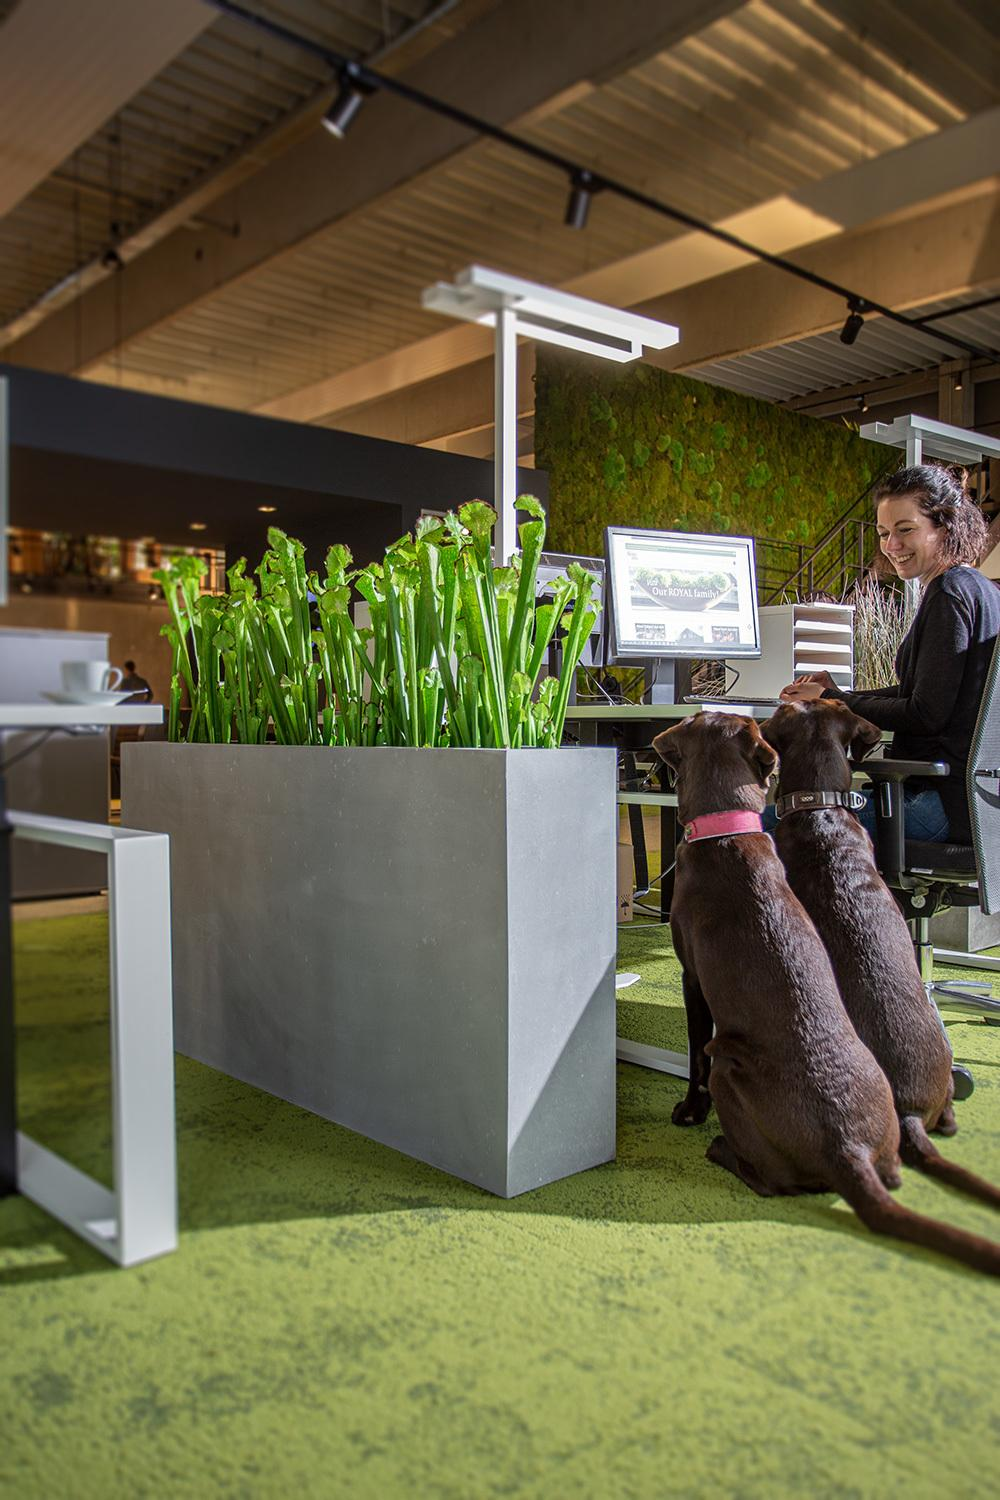 Artificial plants in the office